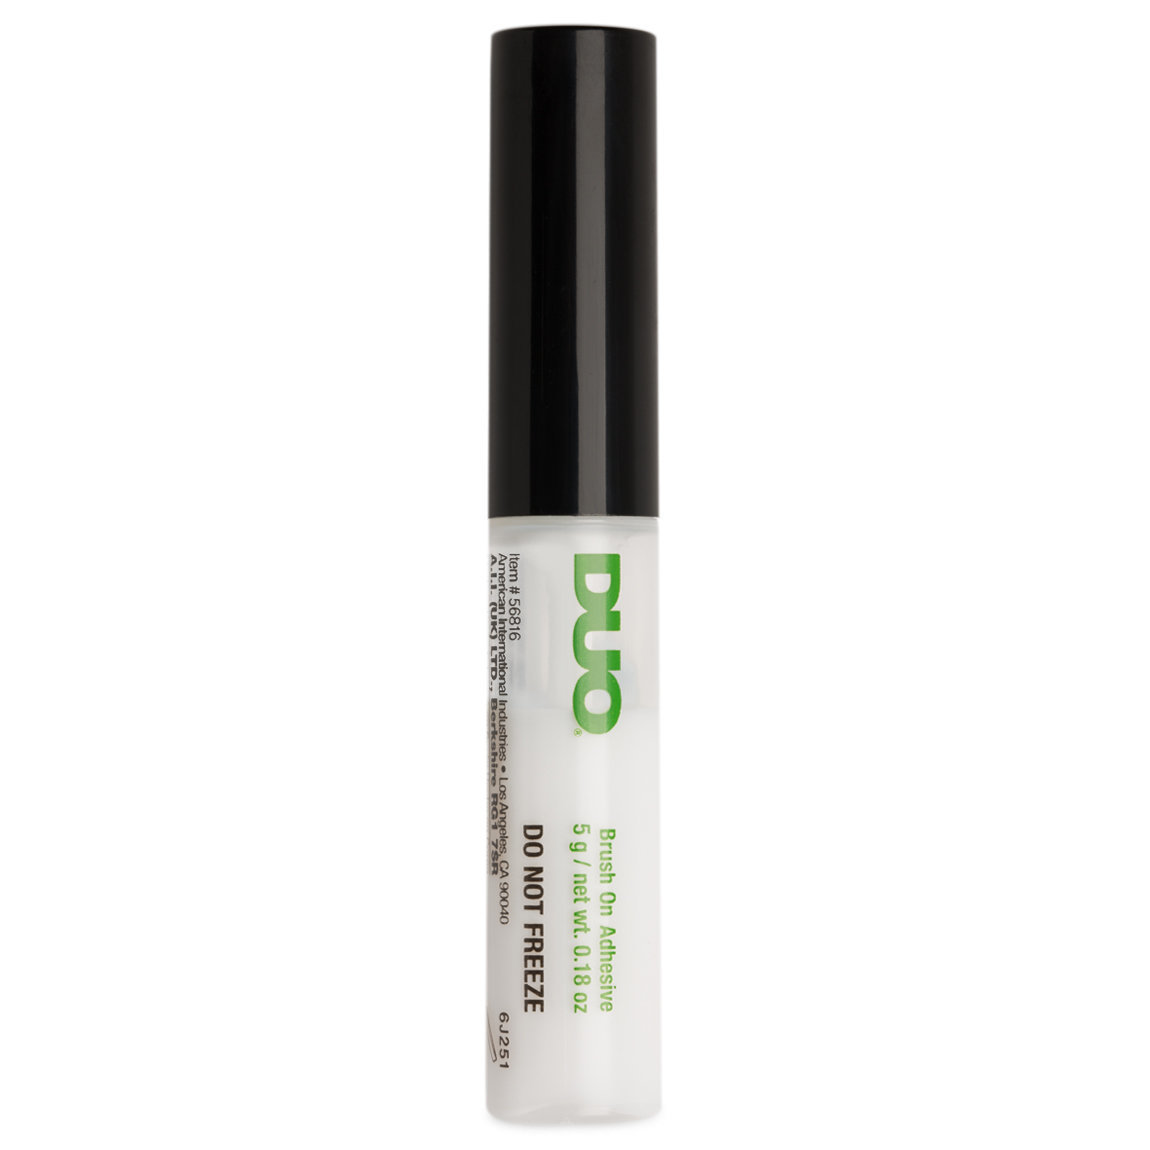 115b1d849f0 DUO Brush-on Adhesive With Vitamins Clear product smear.